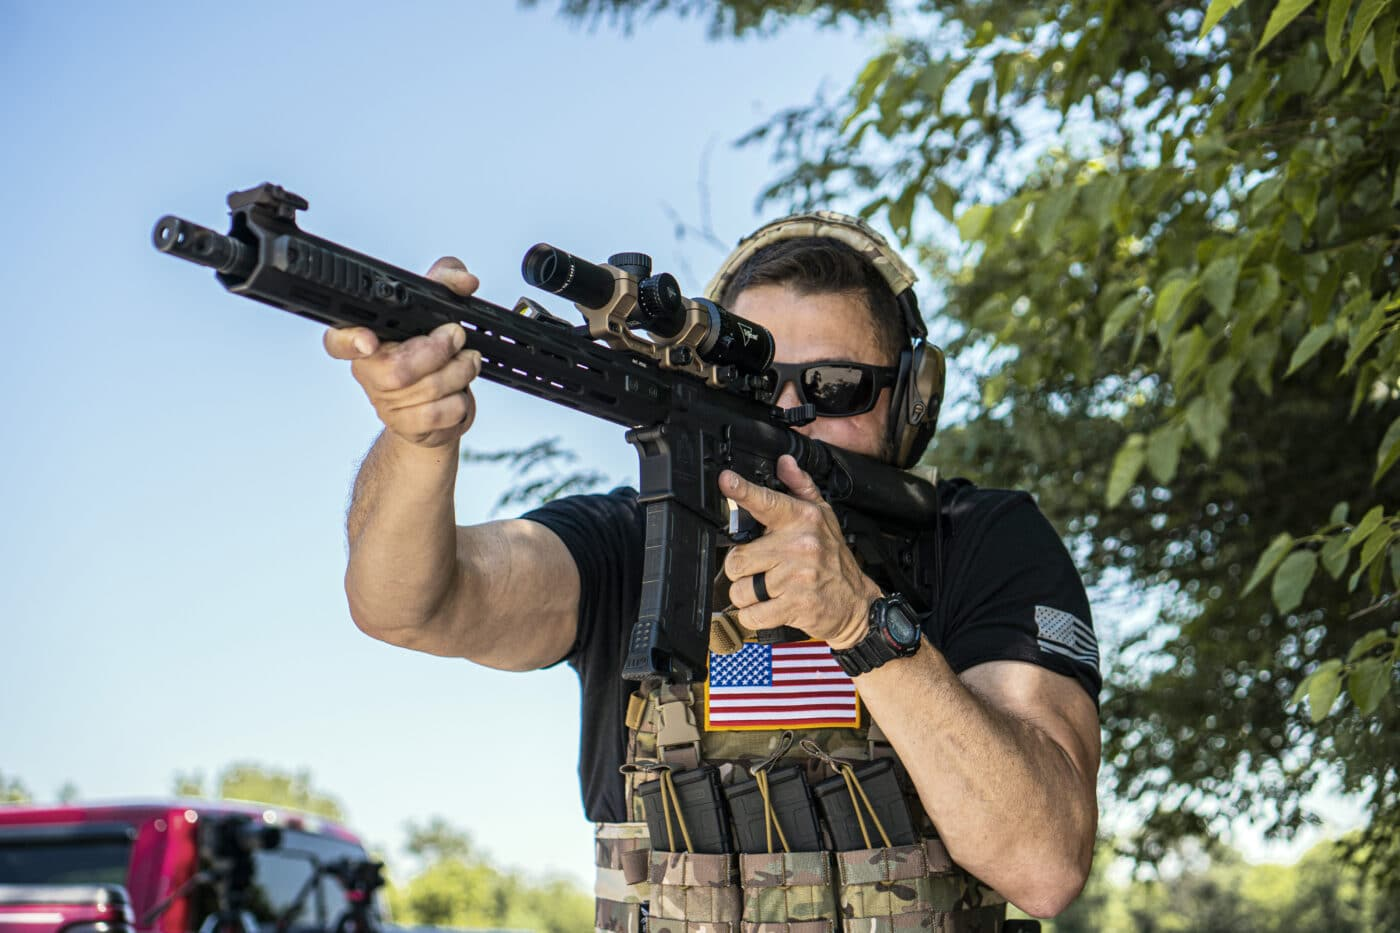 Man using a single point sling with rifle